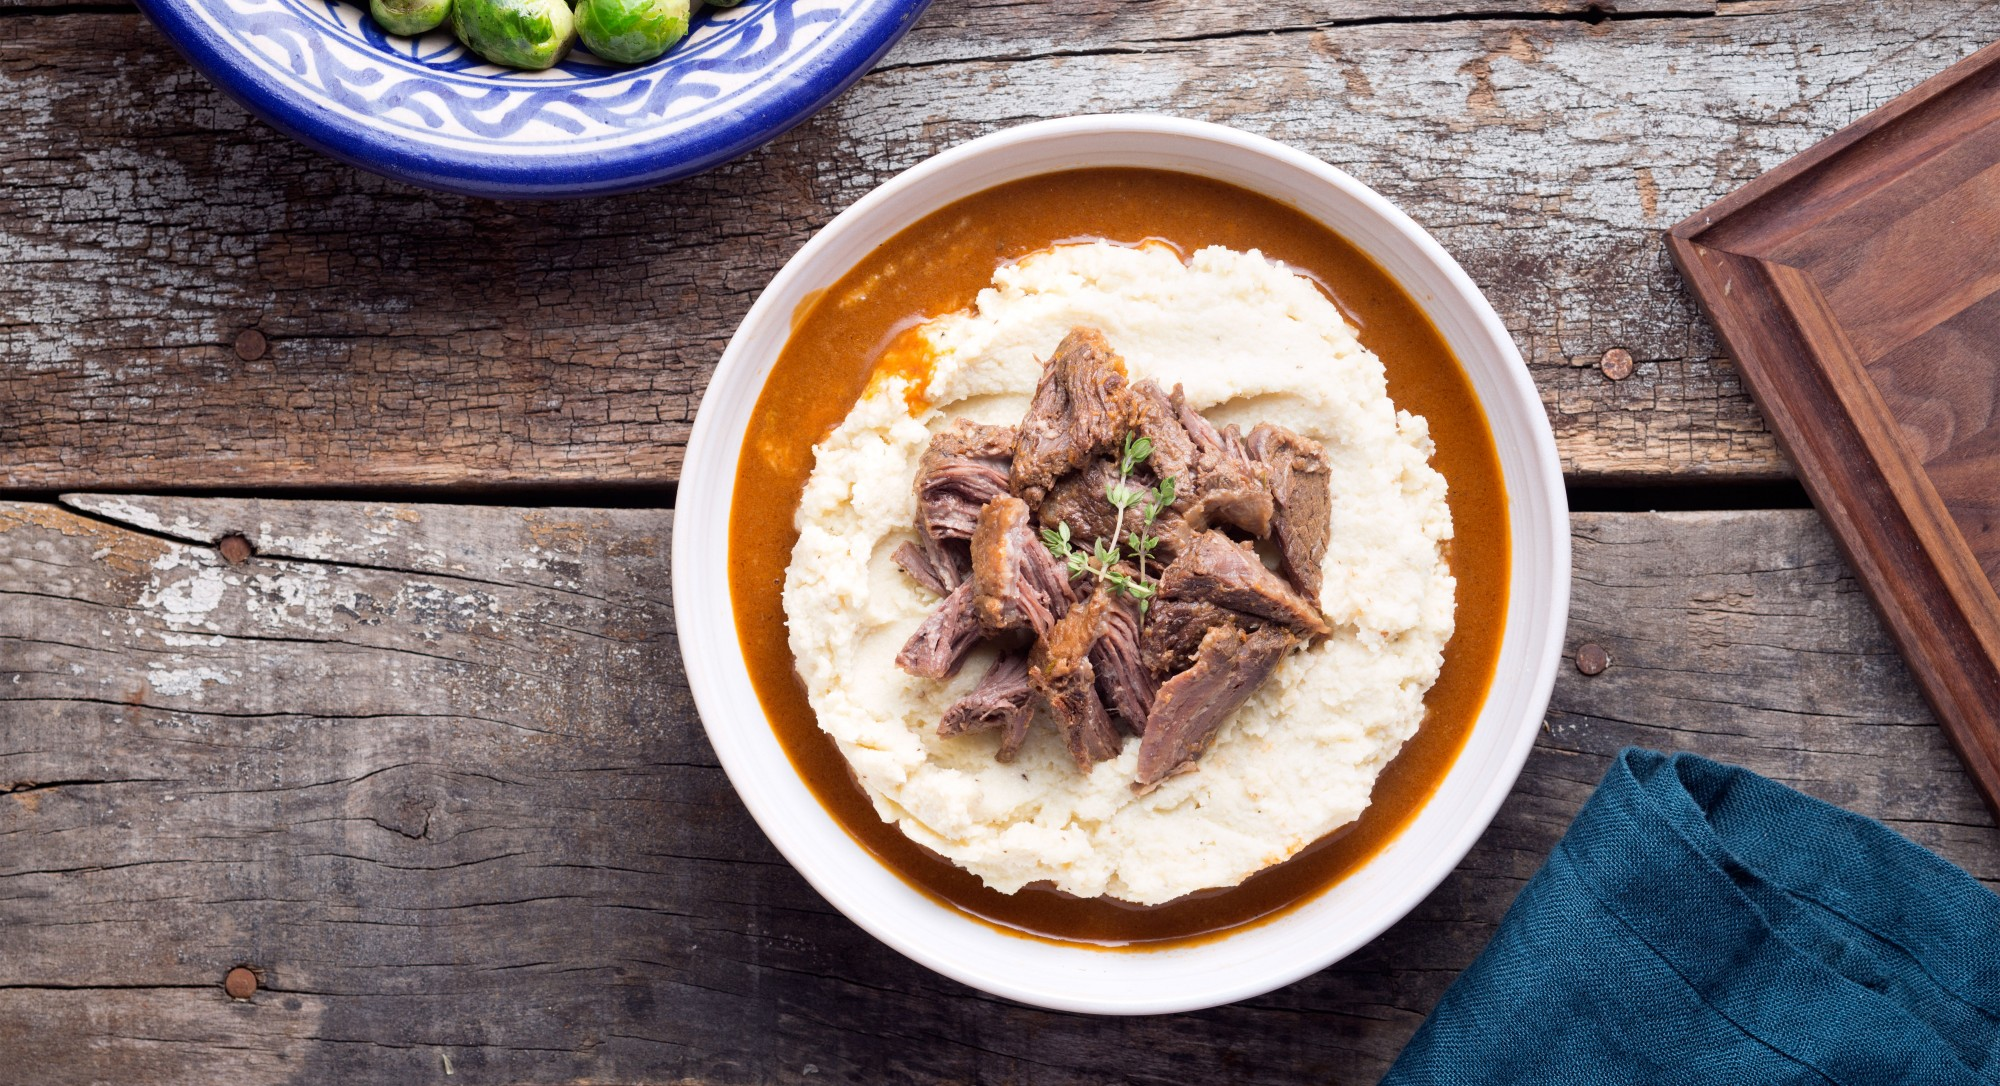 A Slow Cooker Makes Droolworthy Braised Short Ribs Easier Than Ever